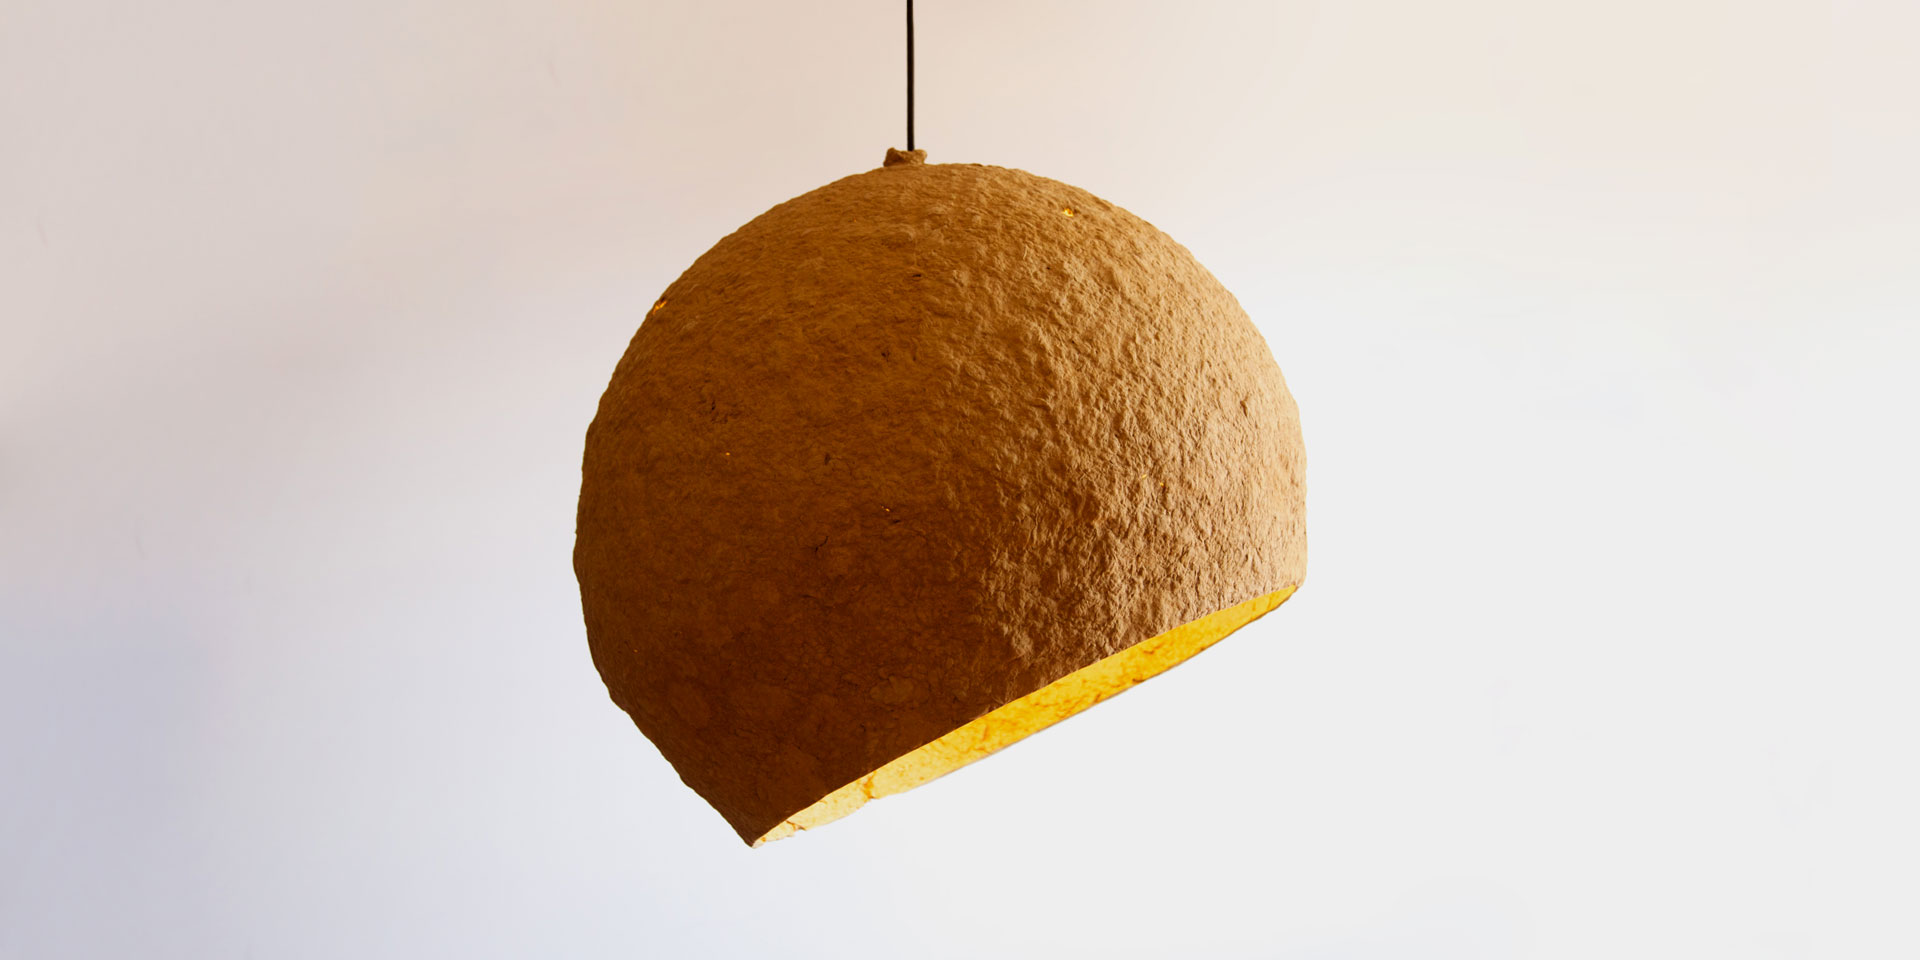 paper-mache-lamp-photo-15